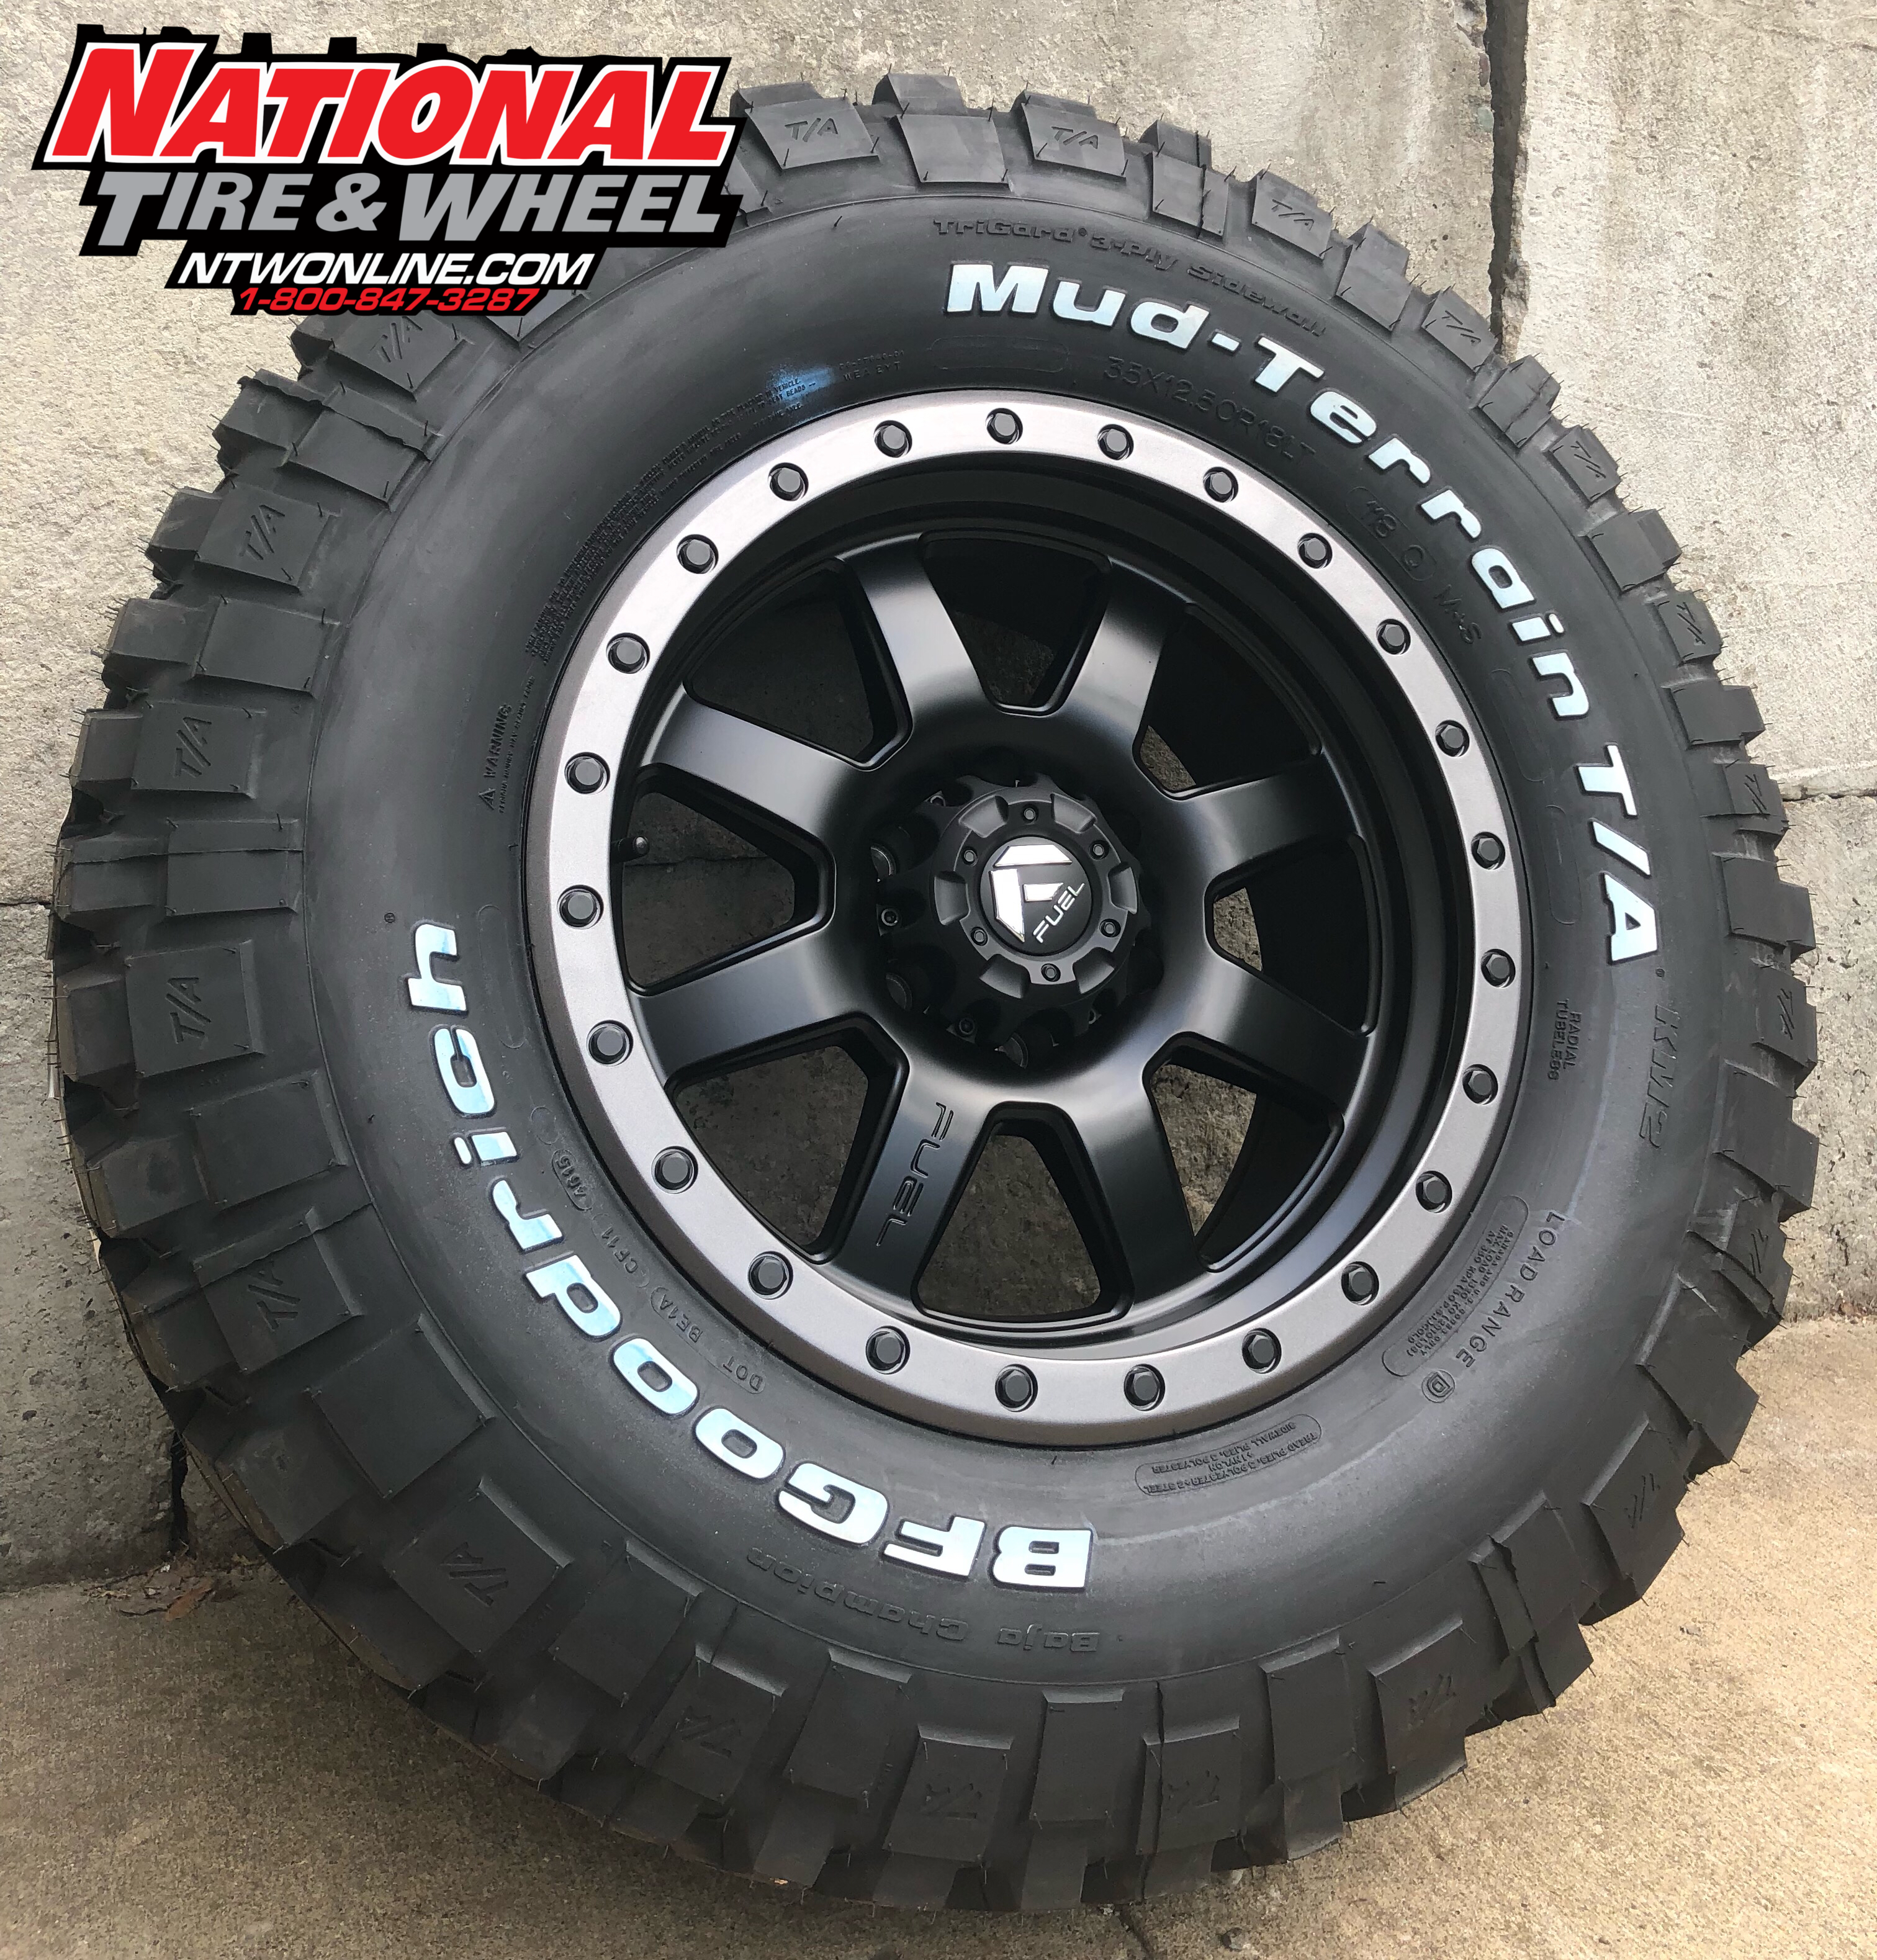 Tire Wheel Package Fuel Wheels Wheel And Tire Packages Wheels And Tires